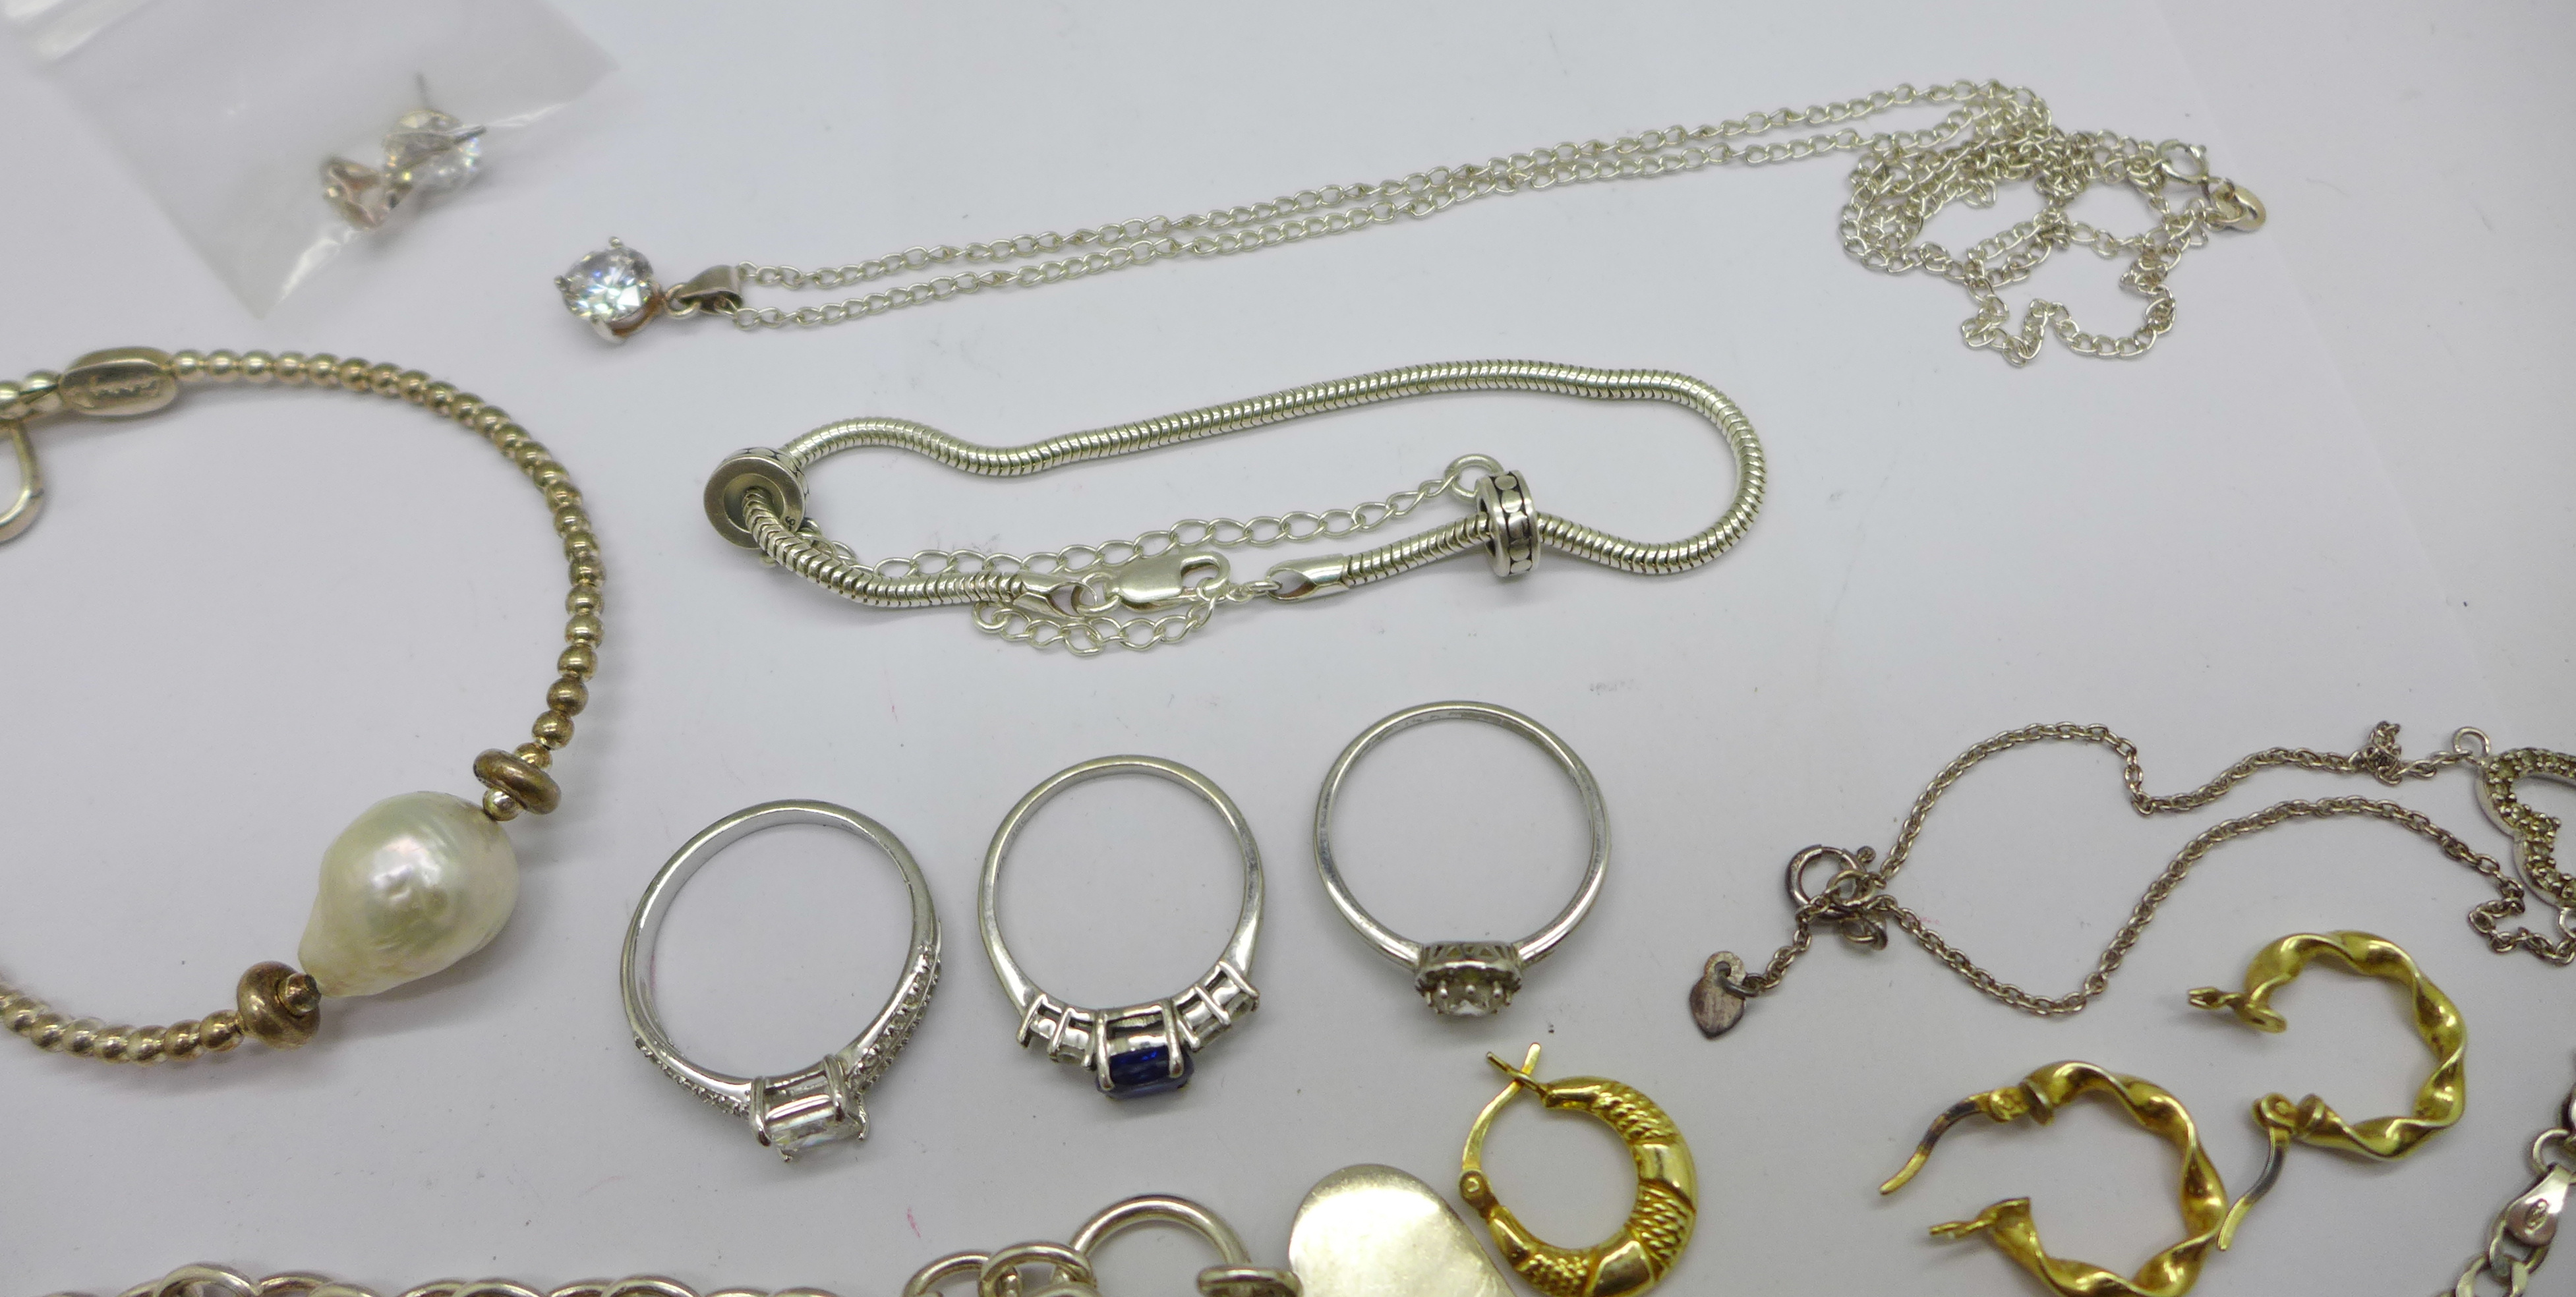 A collection of silver jewellery including bracelets, necklaces and earrings, etc., 80g - Image 3 of 3